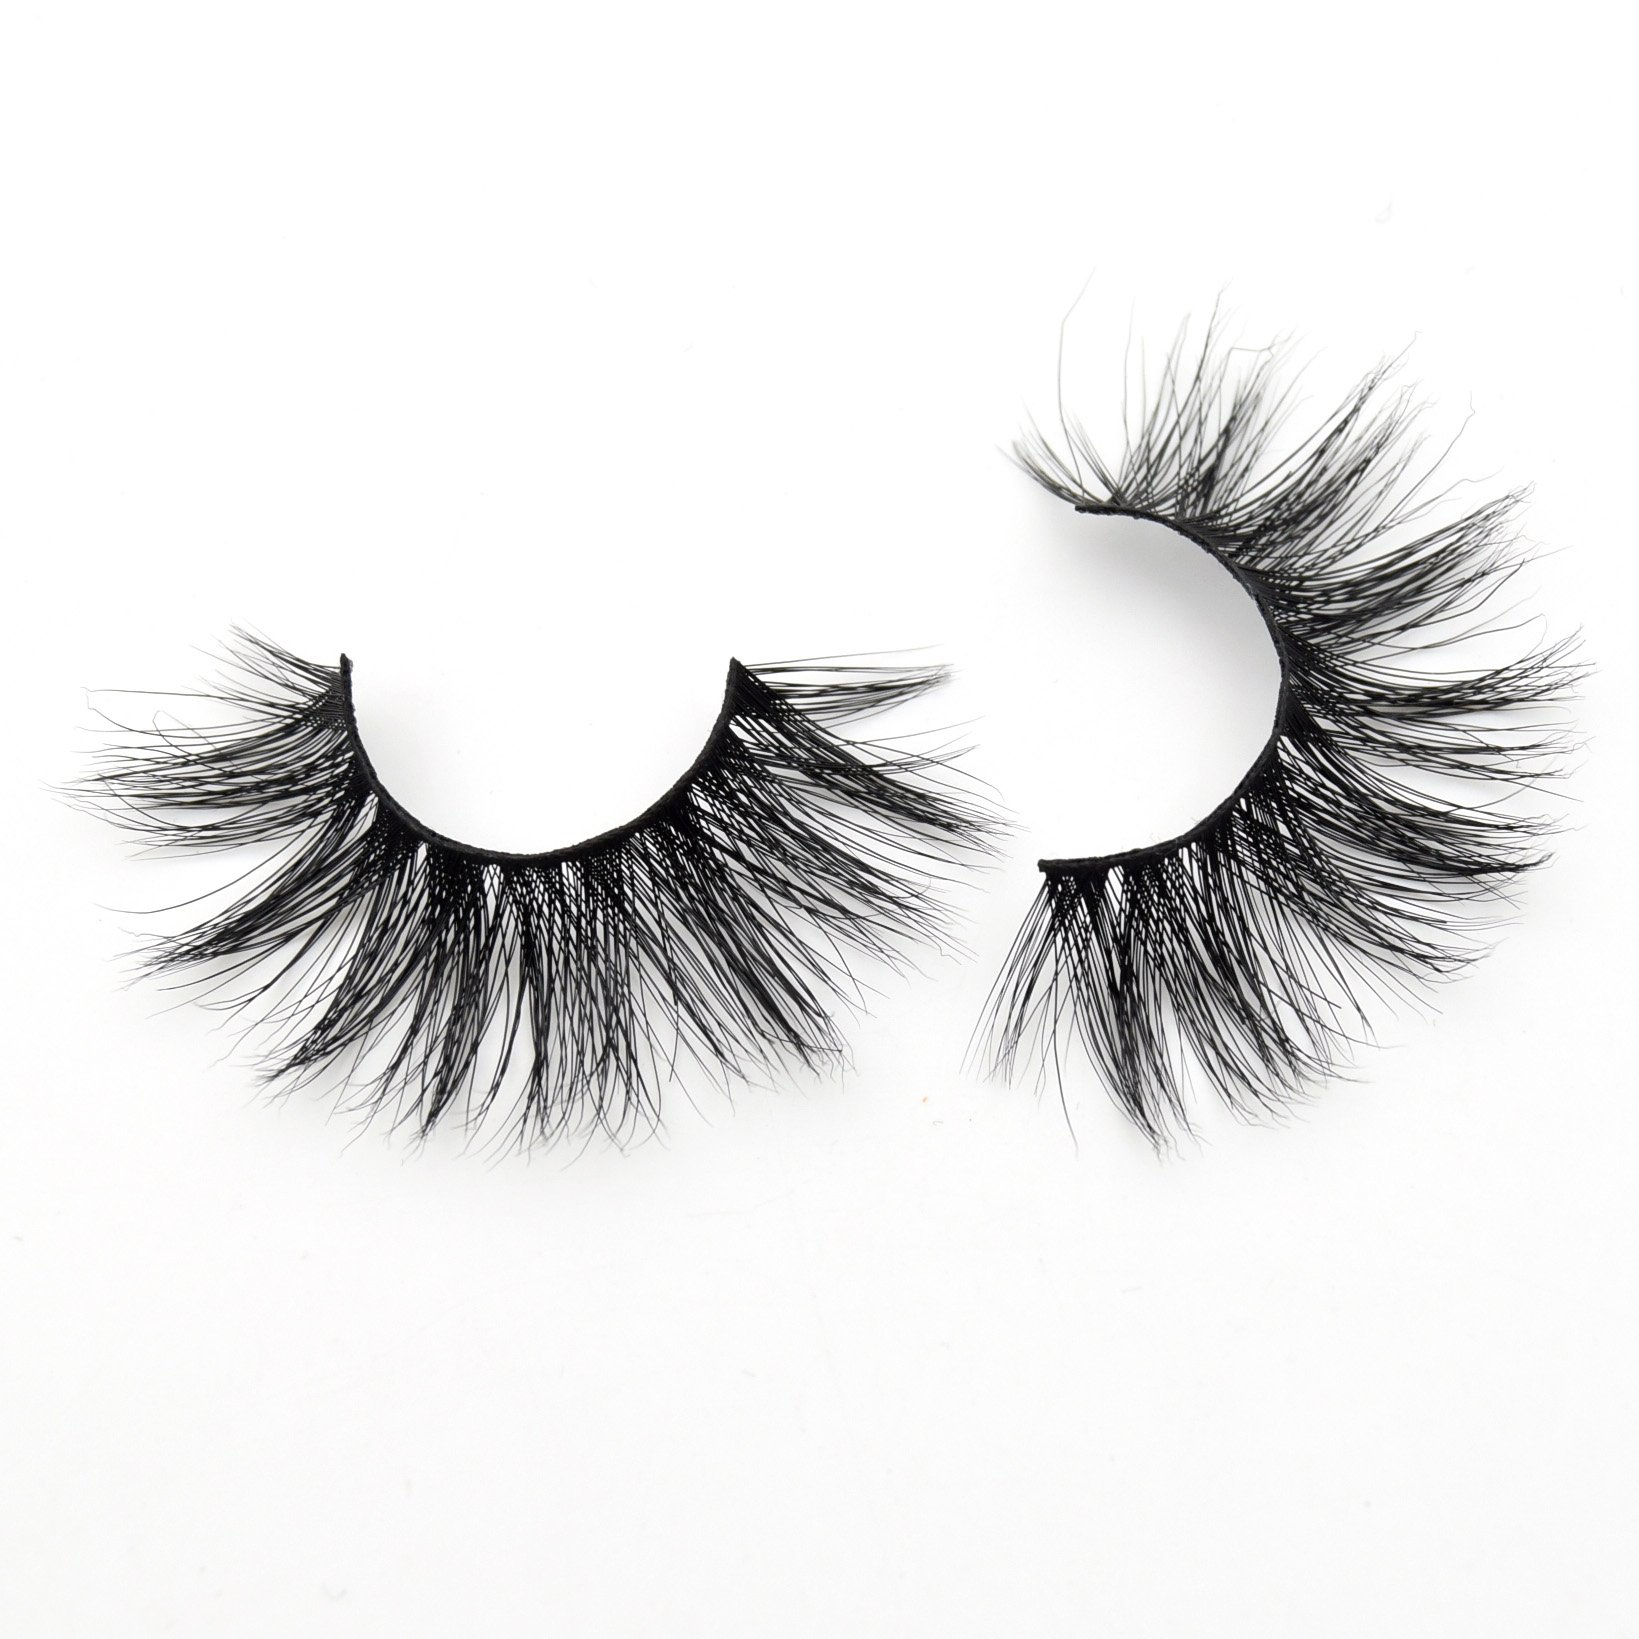 False Eyelashes 8 Different Styles Sexy 100% Handmade 3d Mink Hair Beauty Thick Long Fake Water Eyelashes False Eyelashes Eyelashes High Quality Rich And Magnificent Beauty Essentials